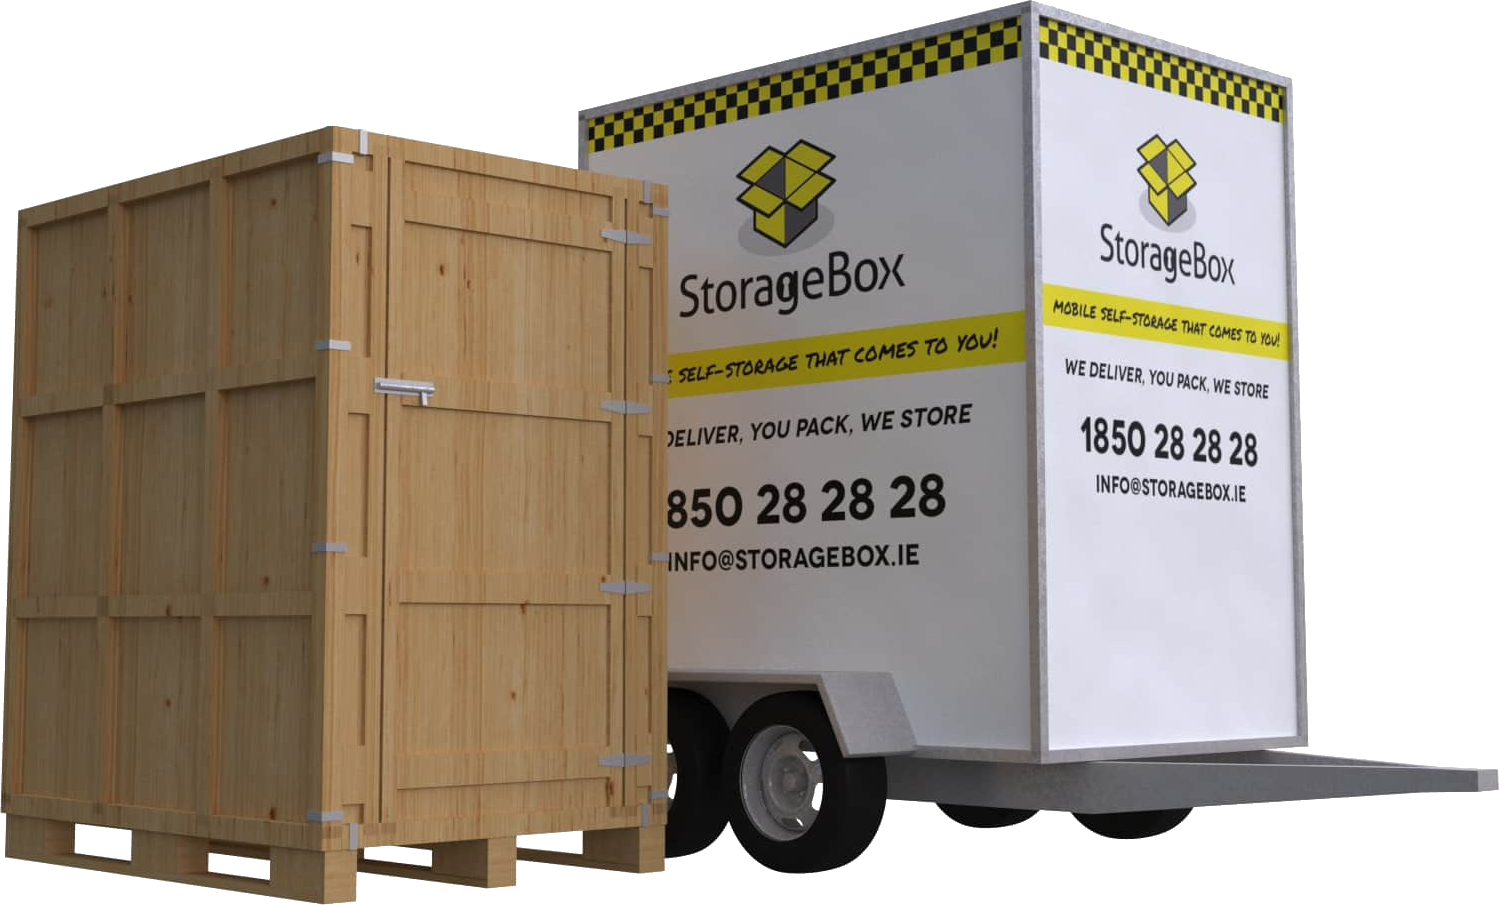 Standard StorageBox - Mobile-Self-Storage-Box-Cheap-Storage-Unit-Dublin-Meath-Louth-Drogheda-Ireland